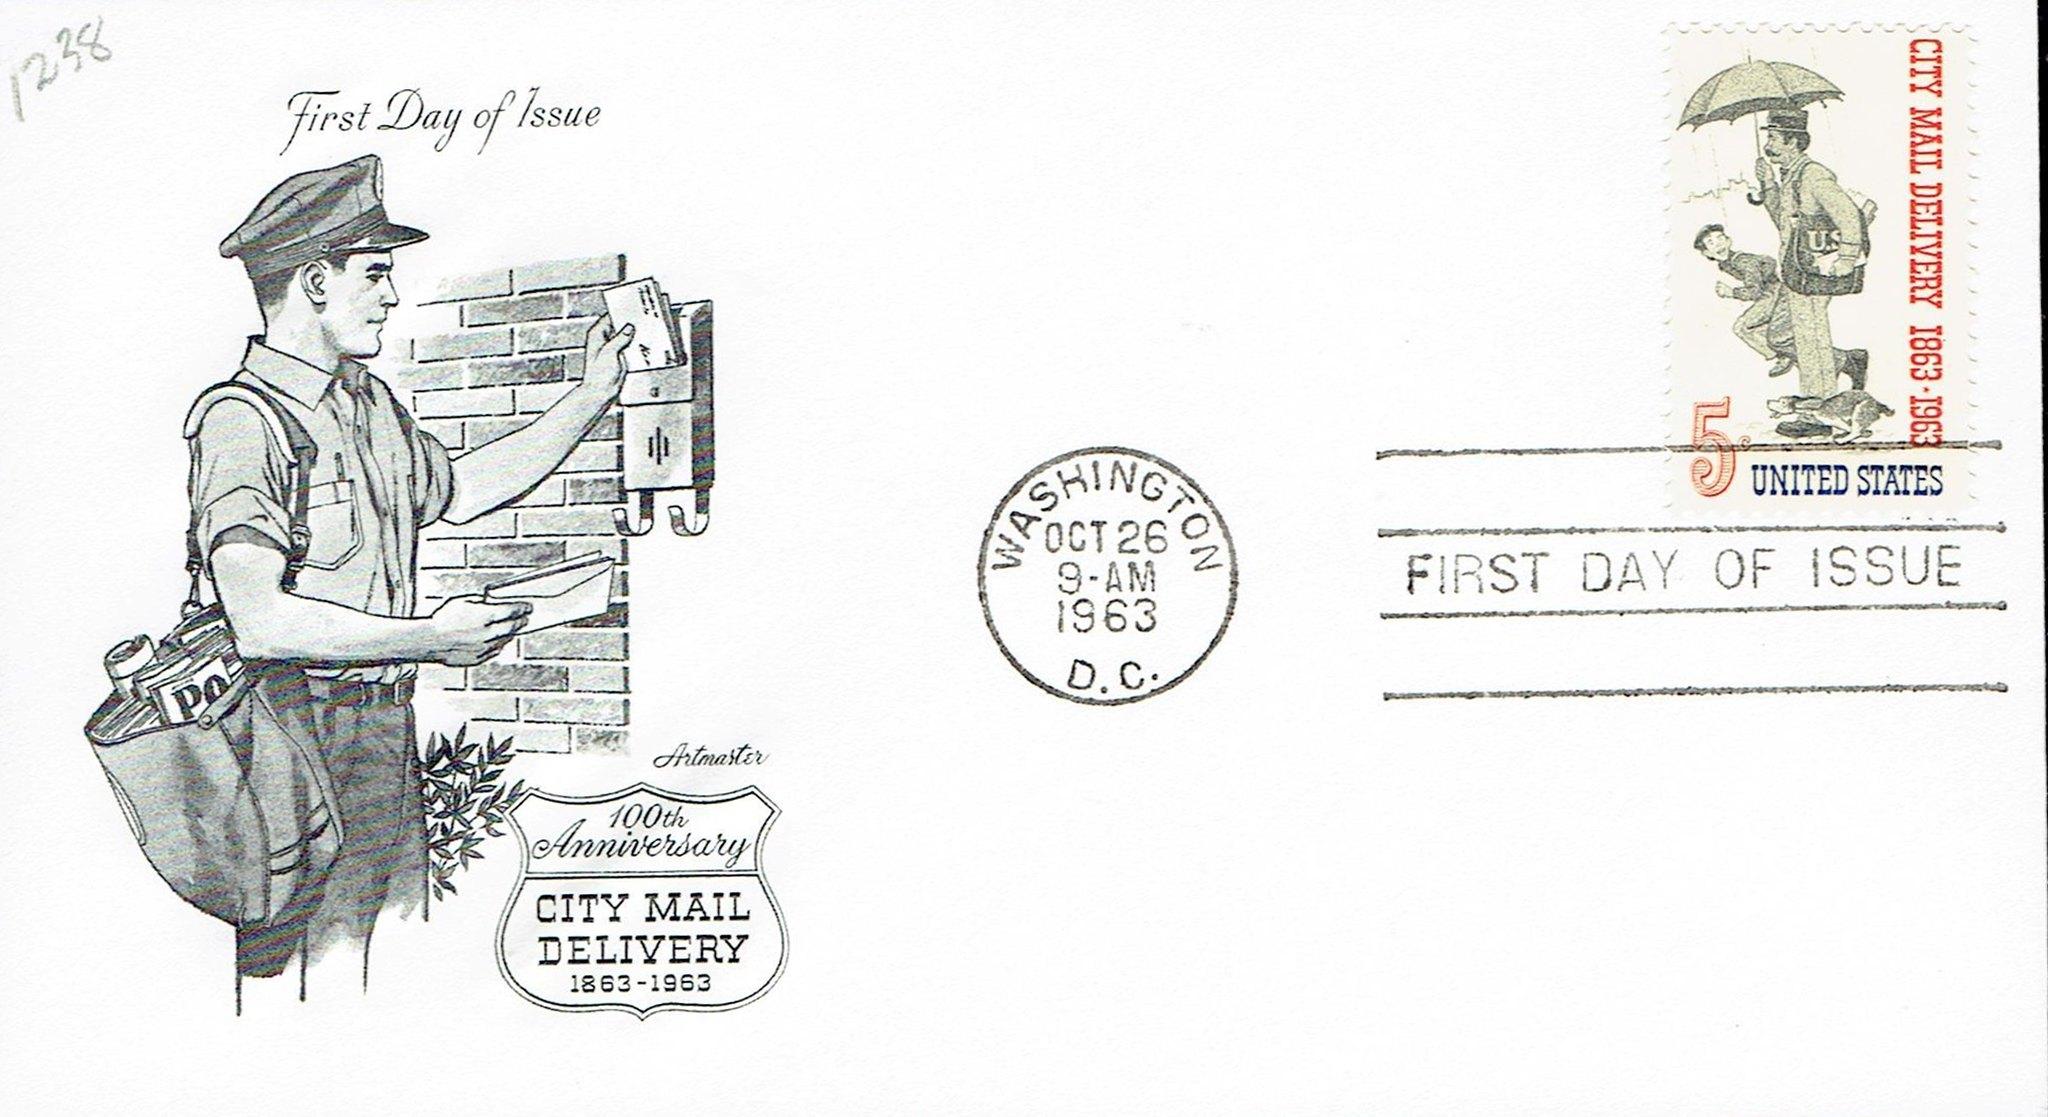 United States - Scott #1238 (1963 first day cover, Artmaster cachet